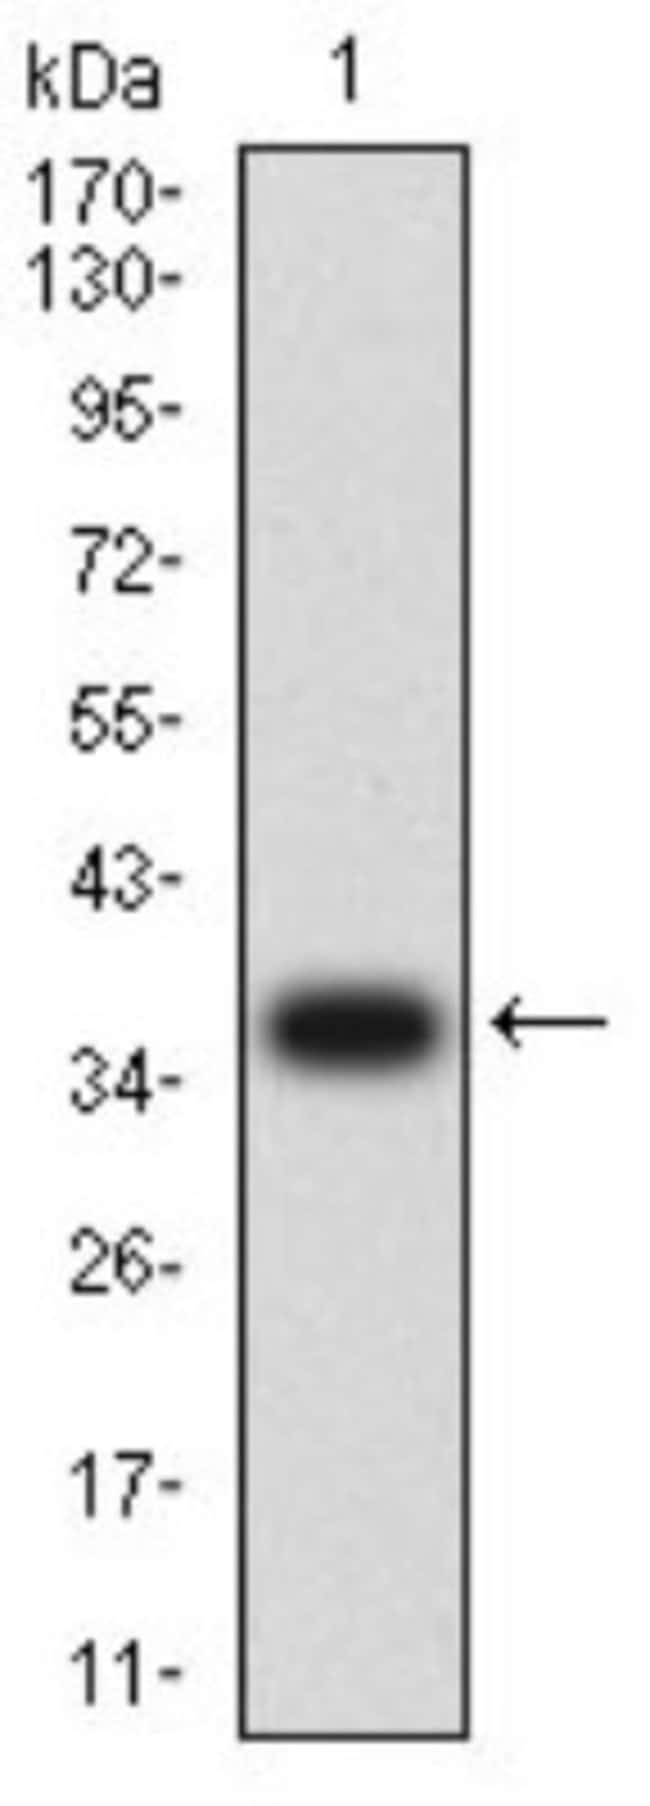 CD3 gamma Mouse anti-Human, Clone: 5B7F9, Novus Biologicals 0.1 ml; Unconjugated